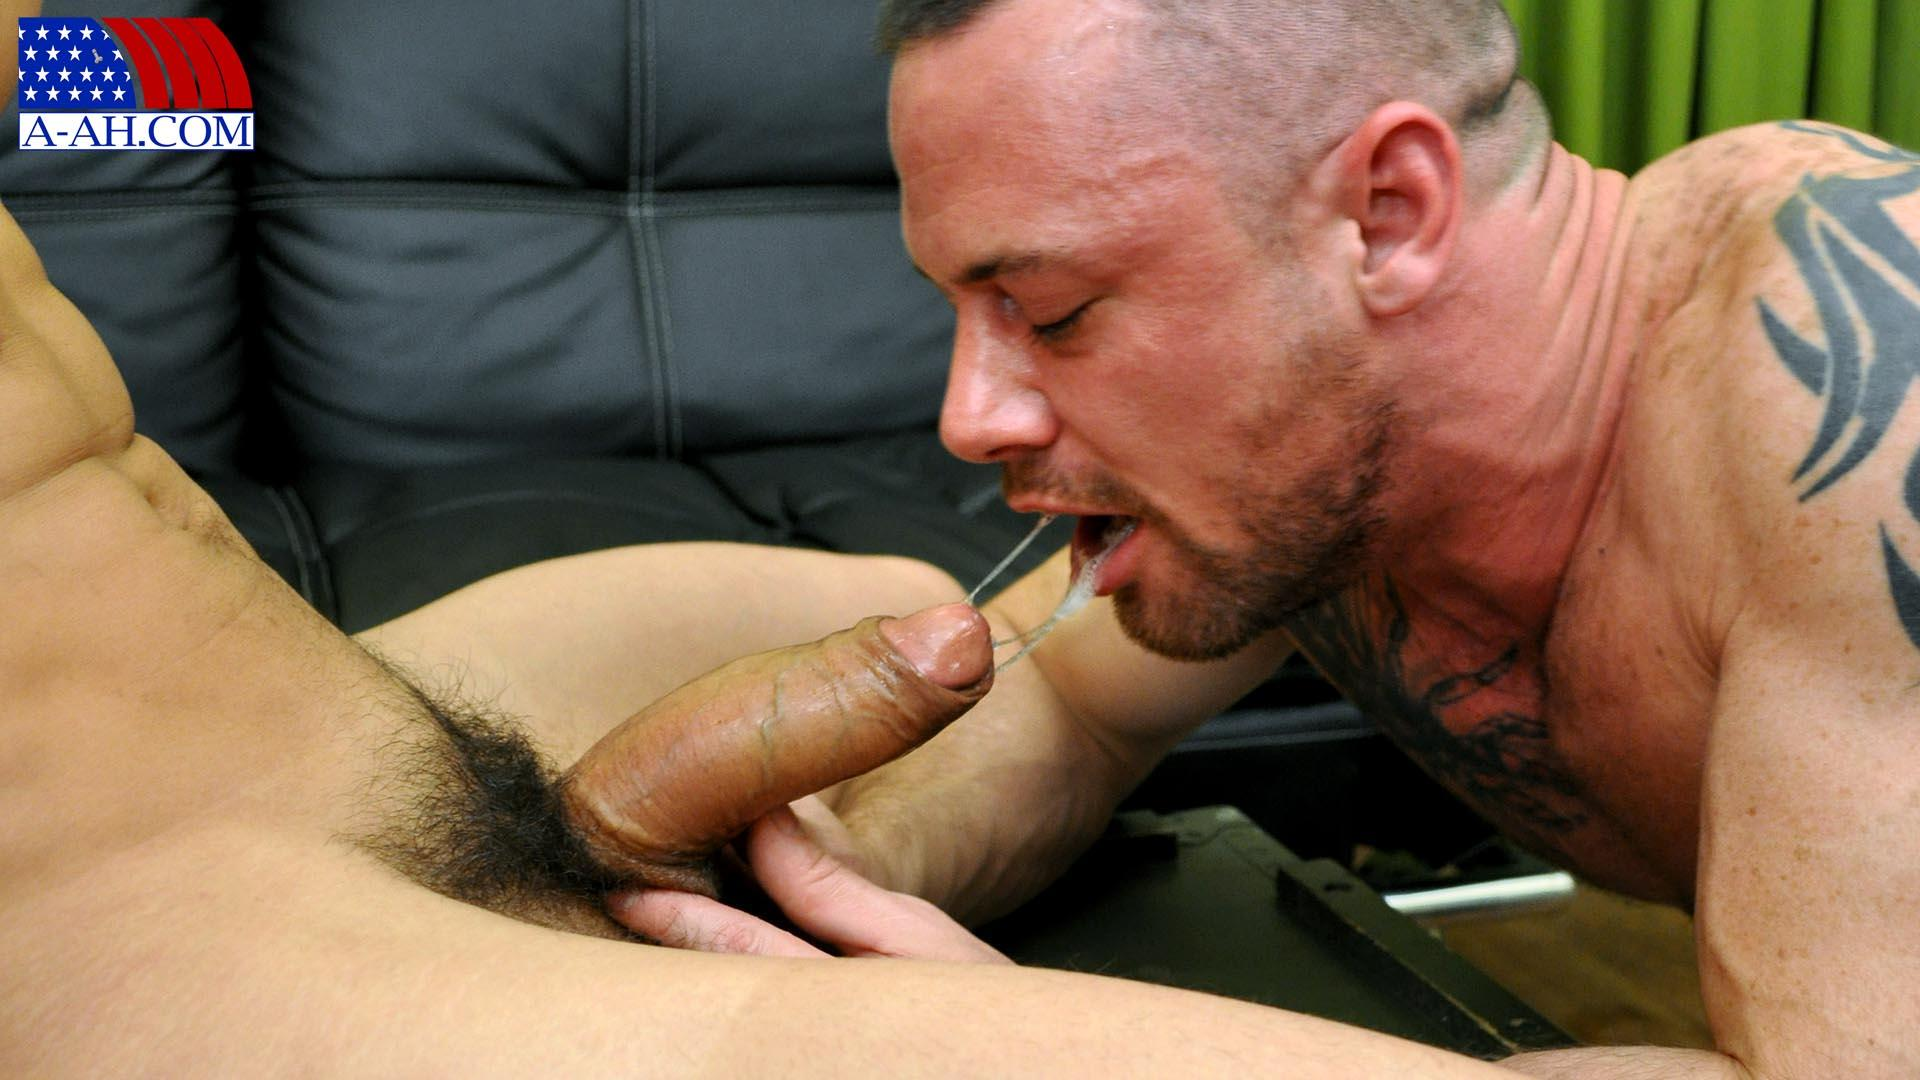 All American Heroes Navy Petty Officer Eddy fucking Army Sergeant Miles Big Uncut Cock Amateur Gay Porn 05